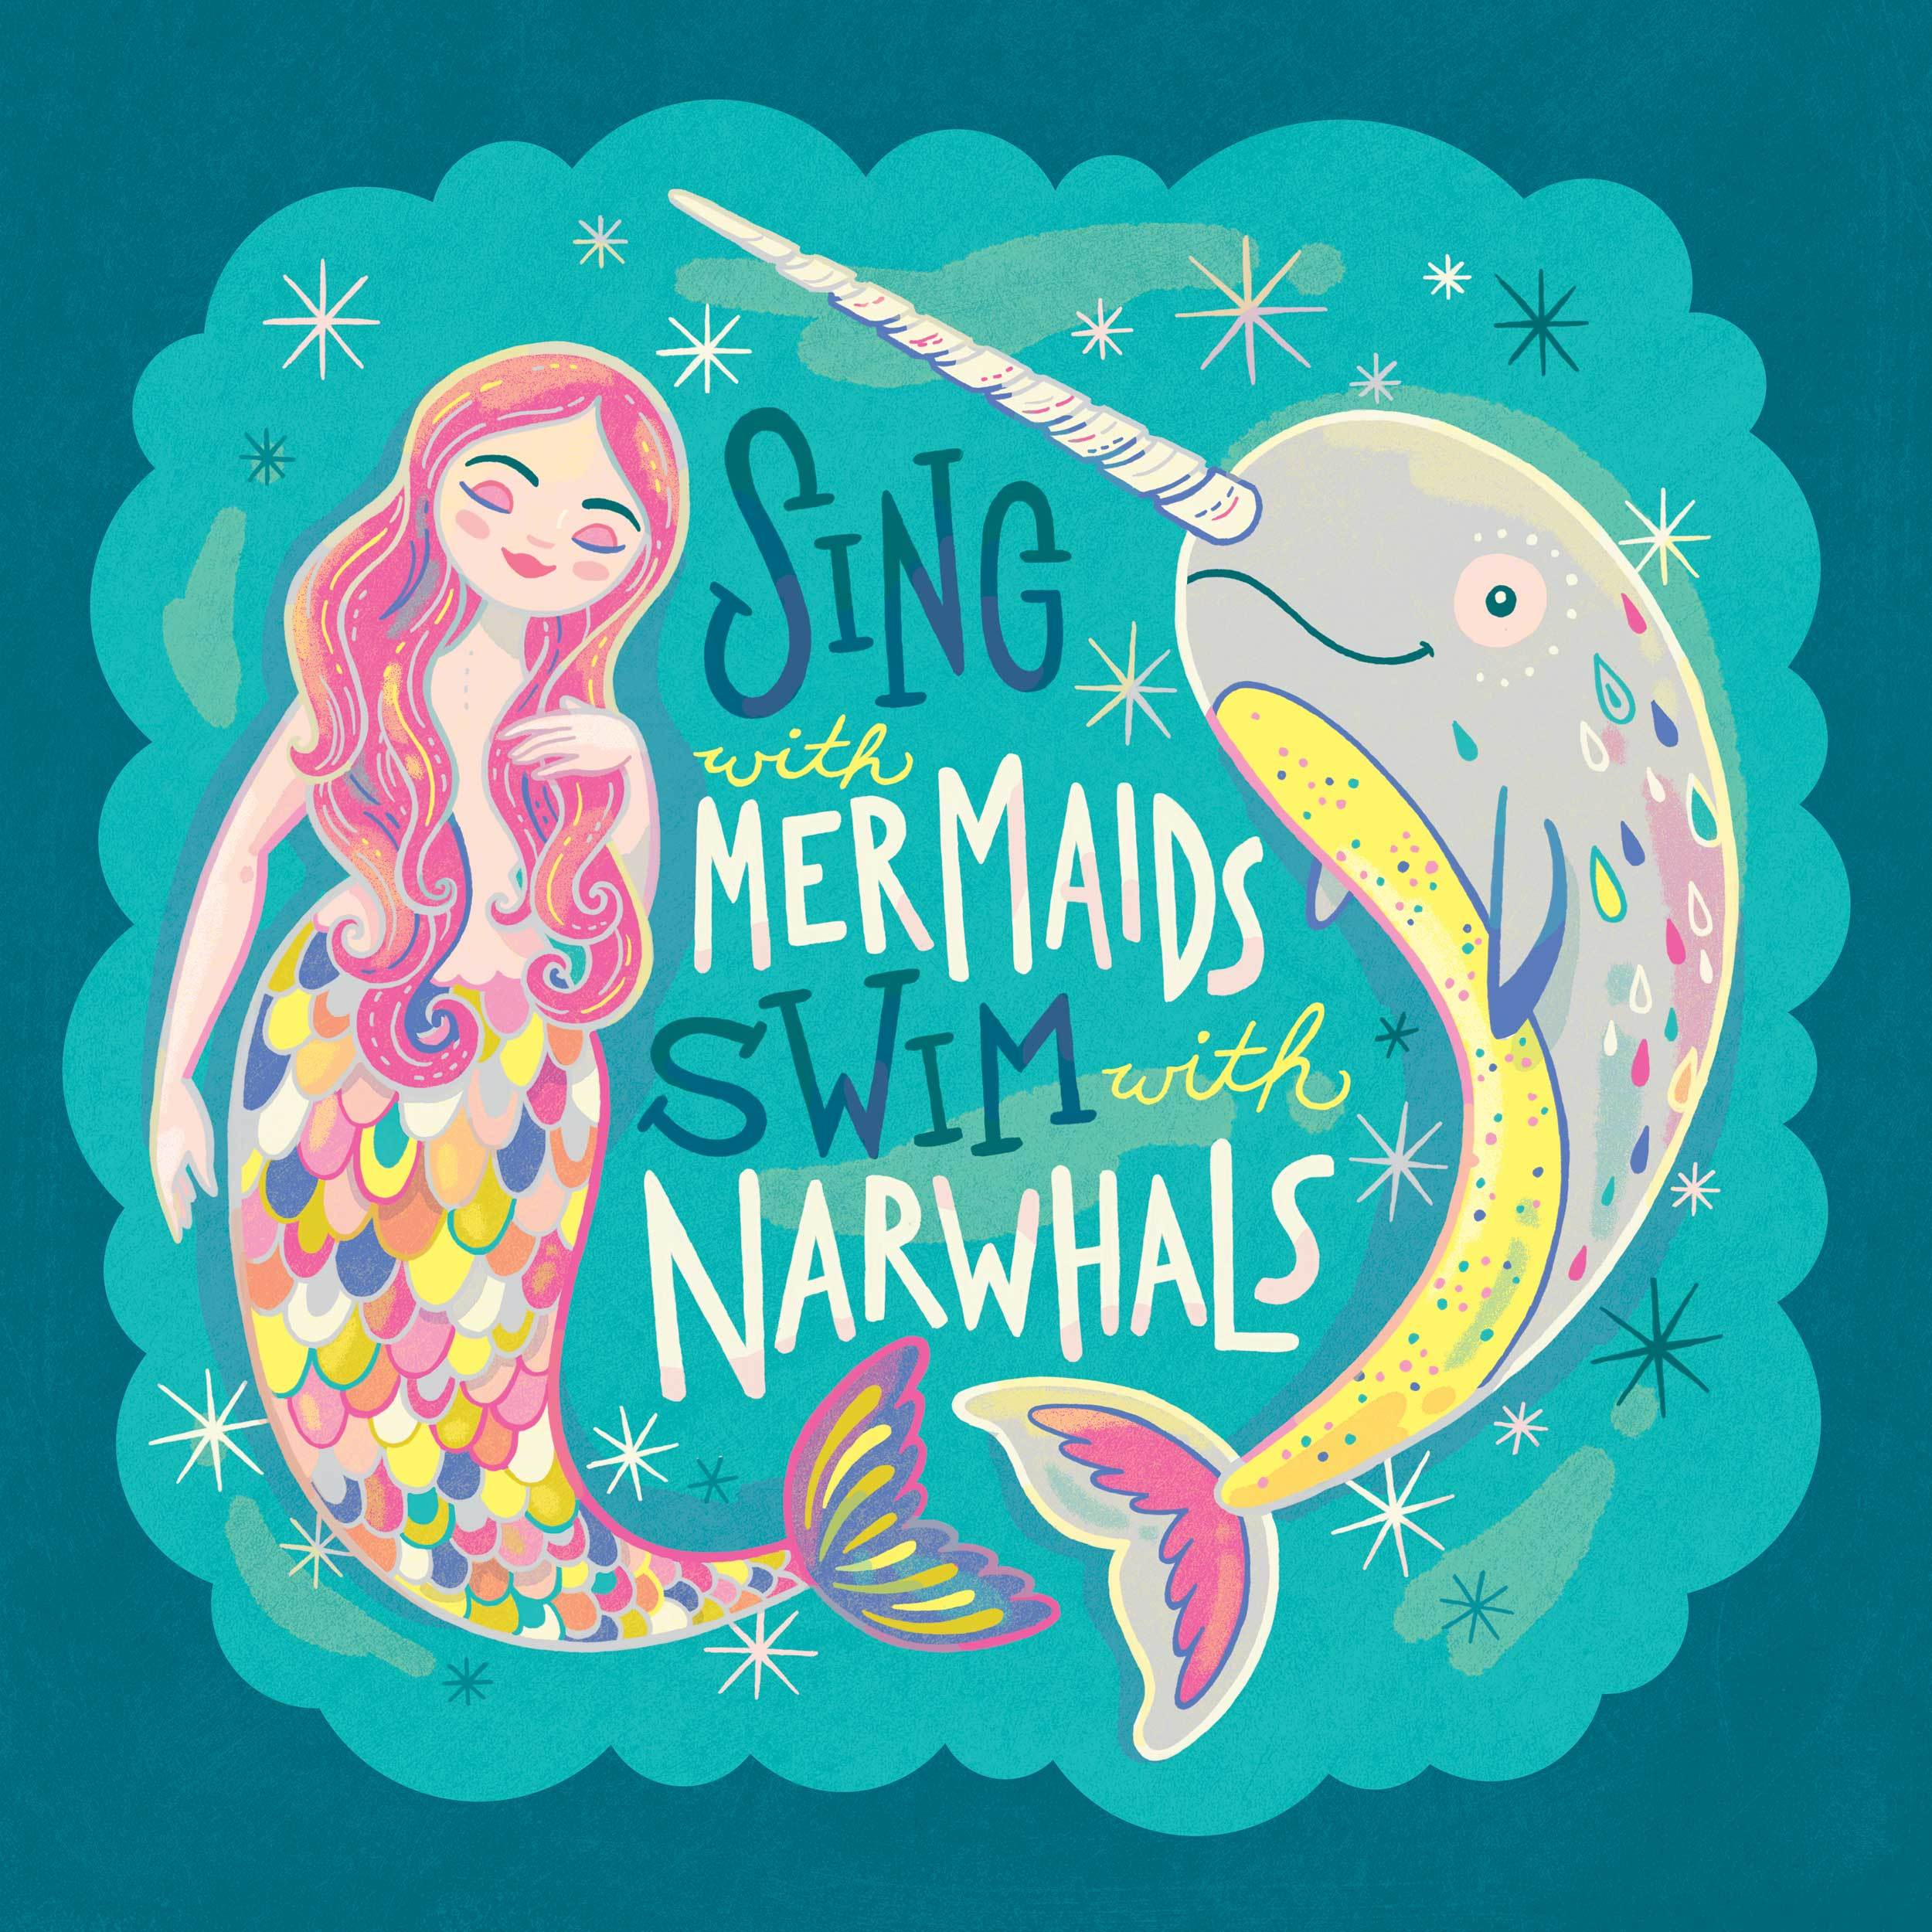 fbaeb574055dc Anni Betts Illustration: Narwhal Nation 2019